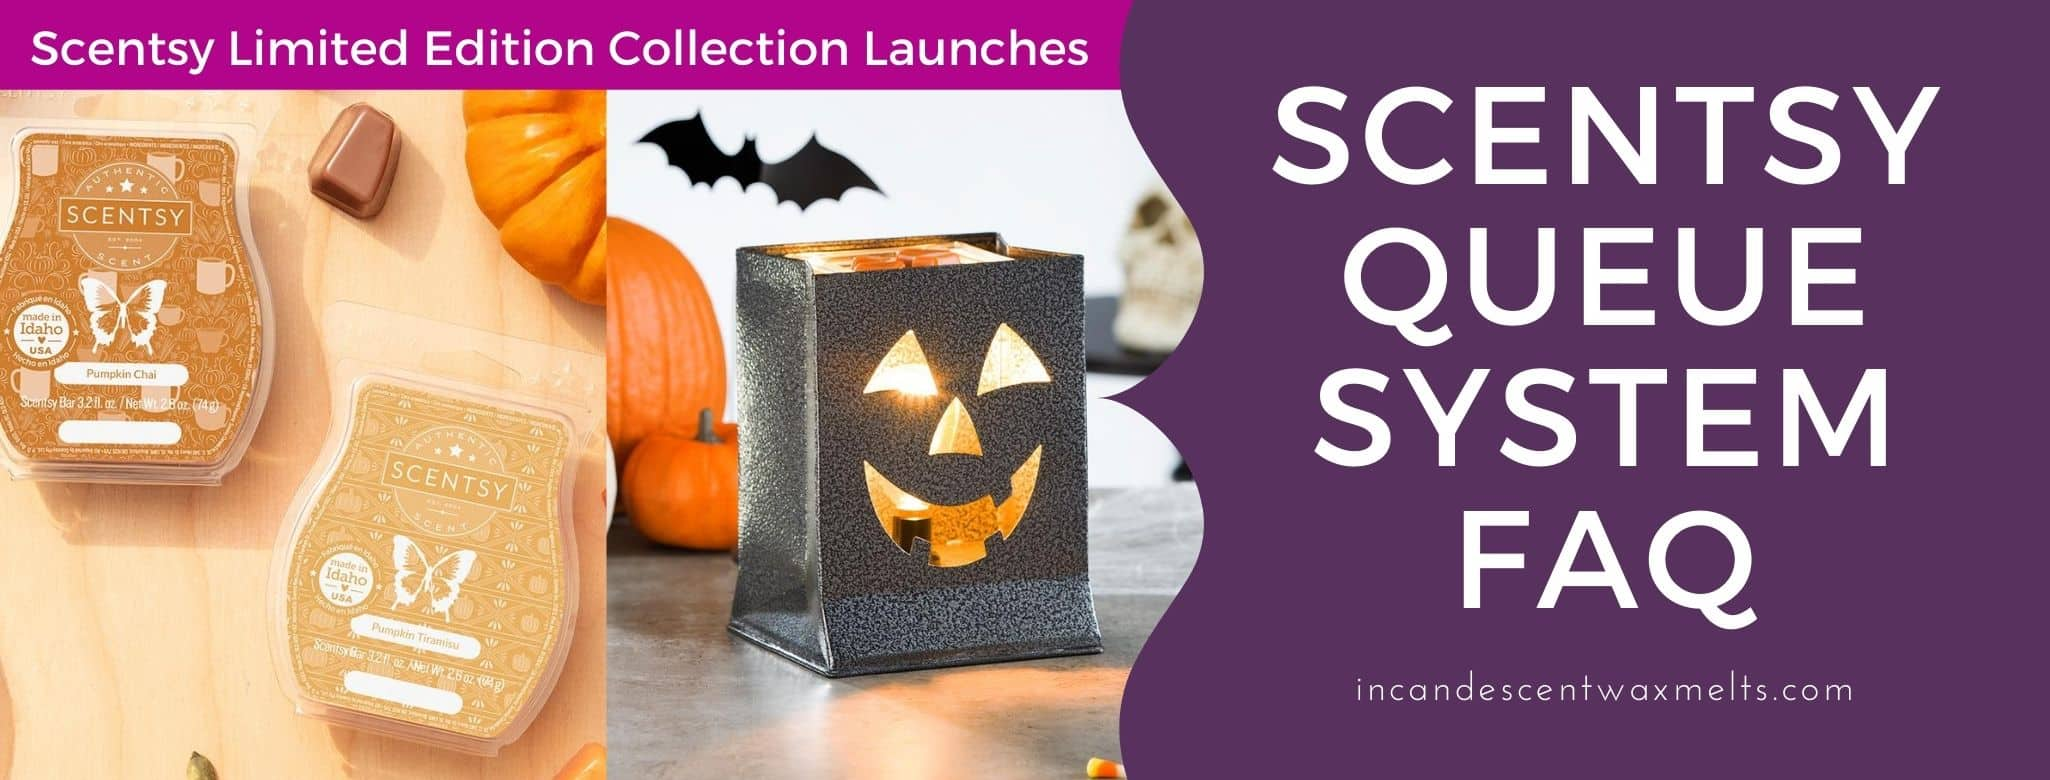 scentsy queue system faq 3